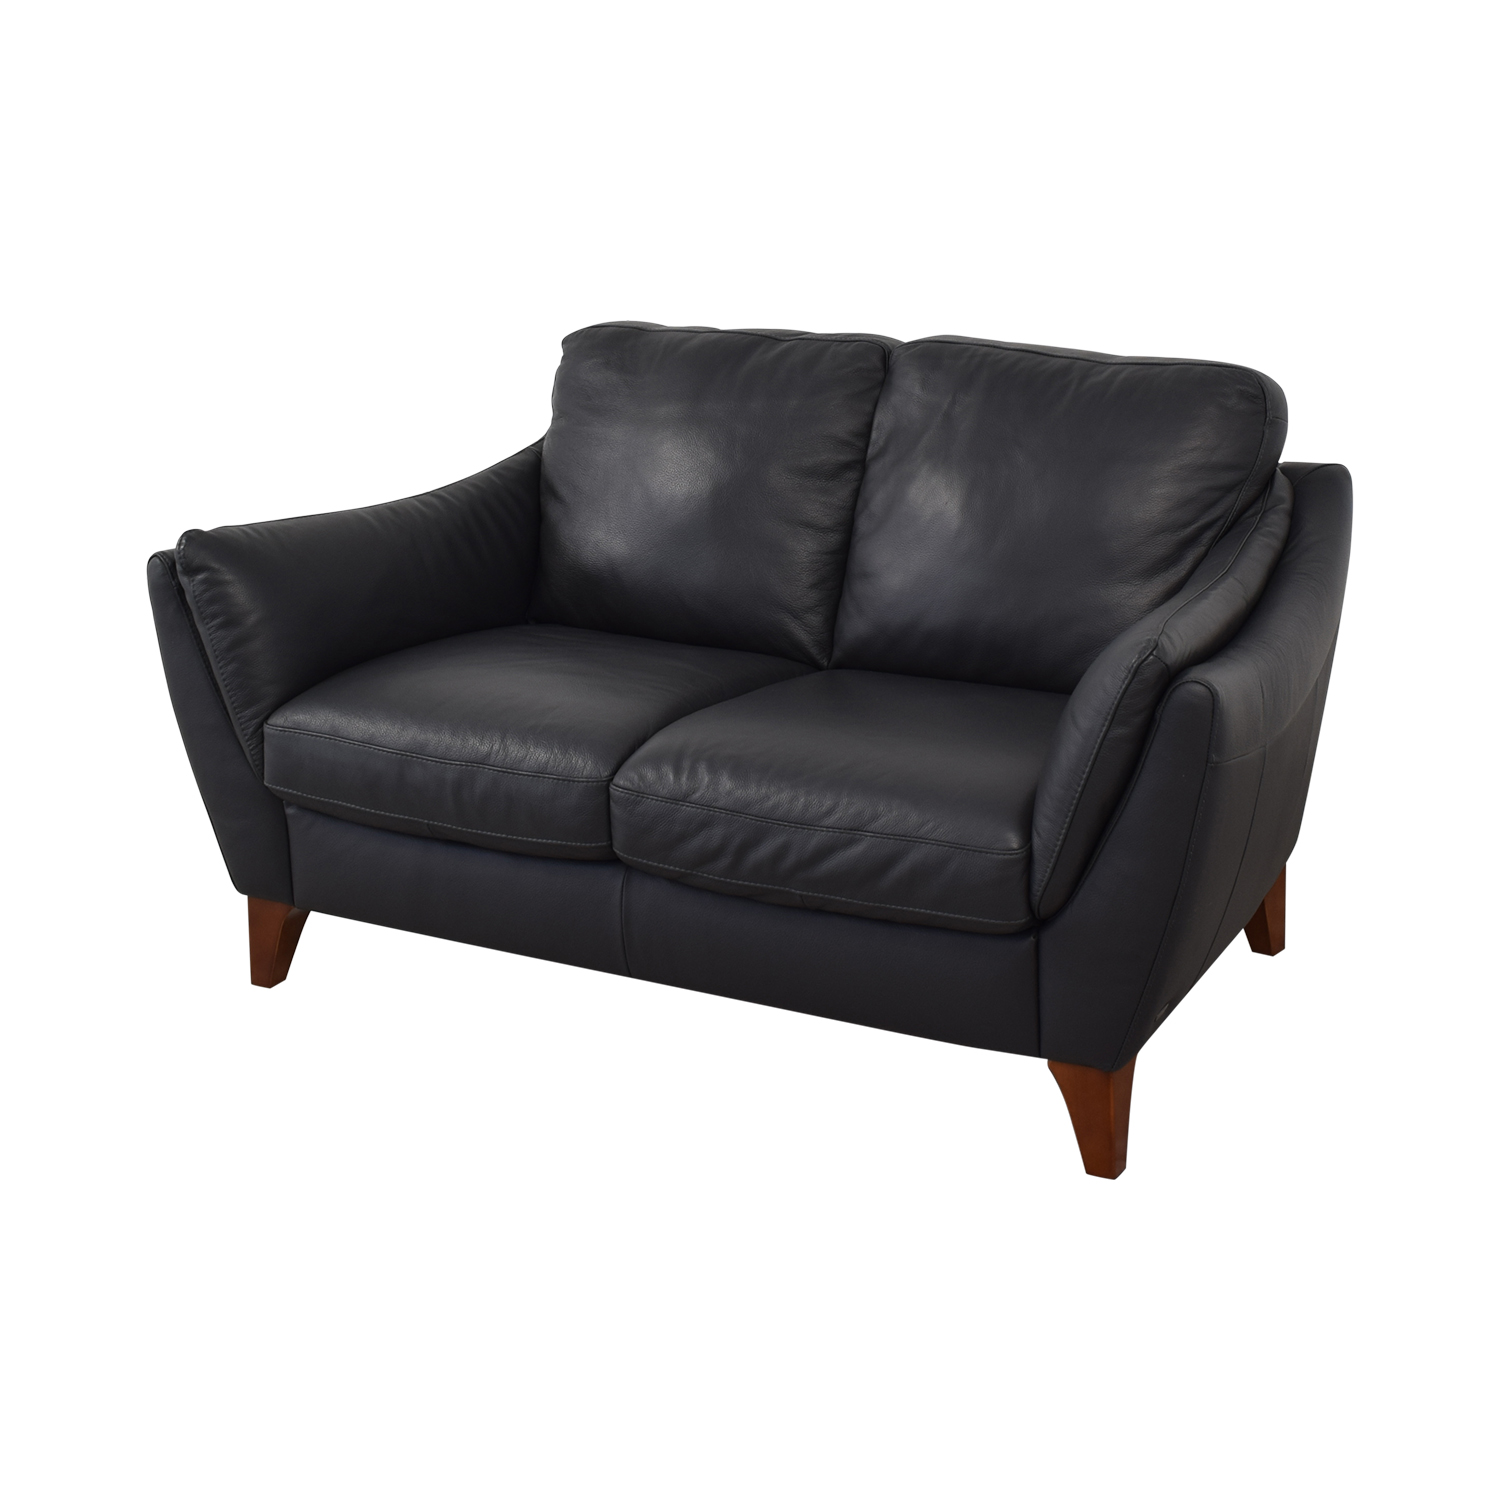 Raymour & Flanigan Raymour & Flanigan Greccio Leather Loveseat on sale